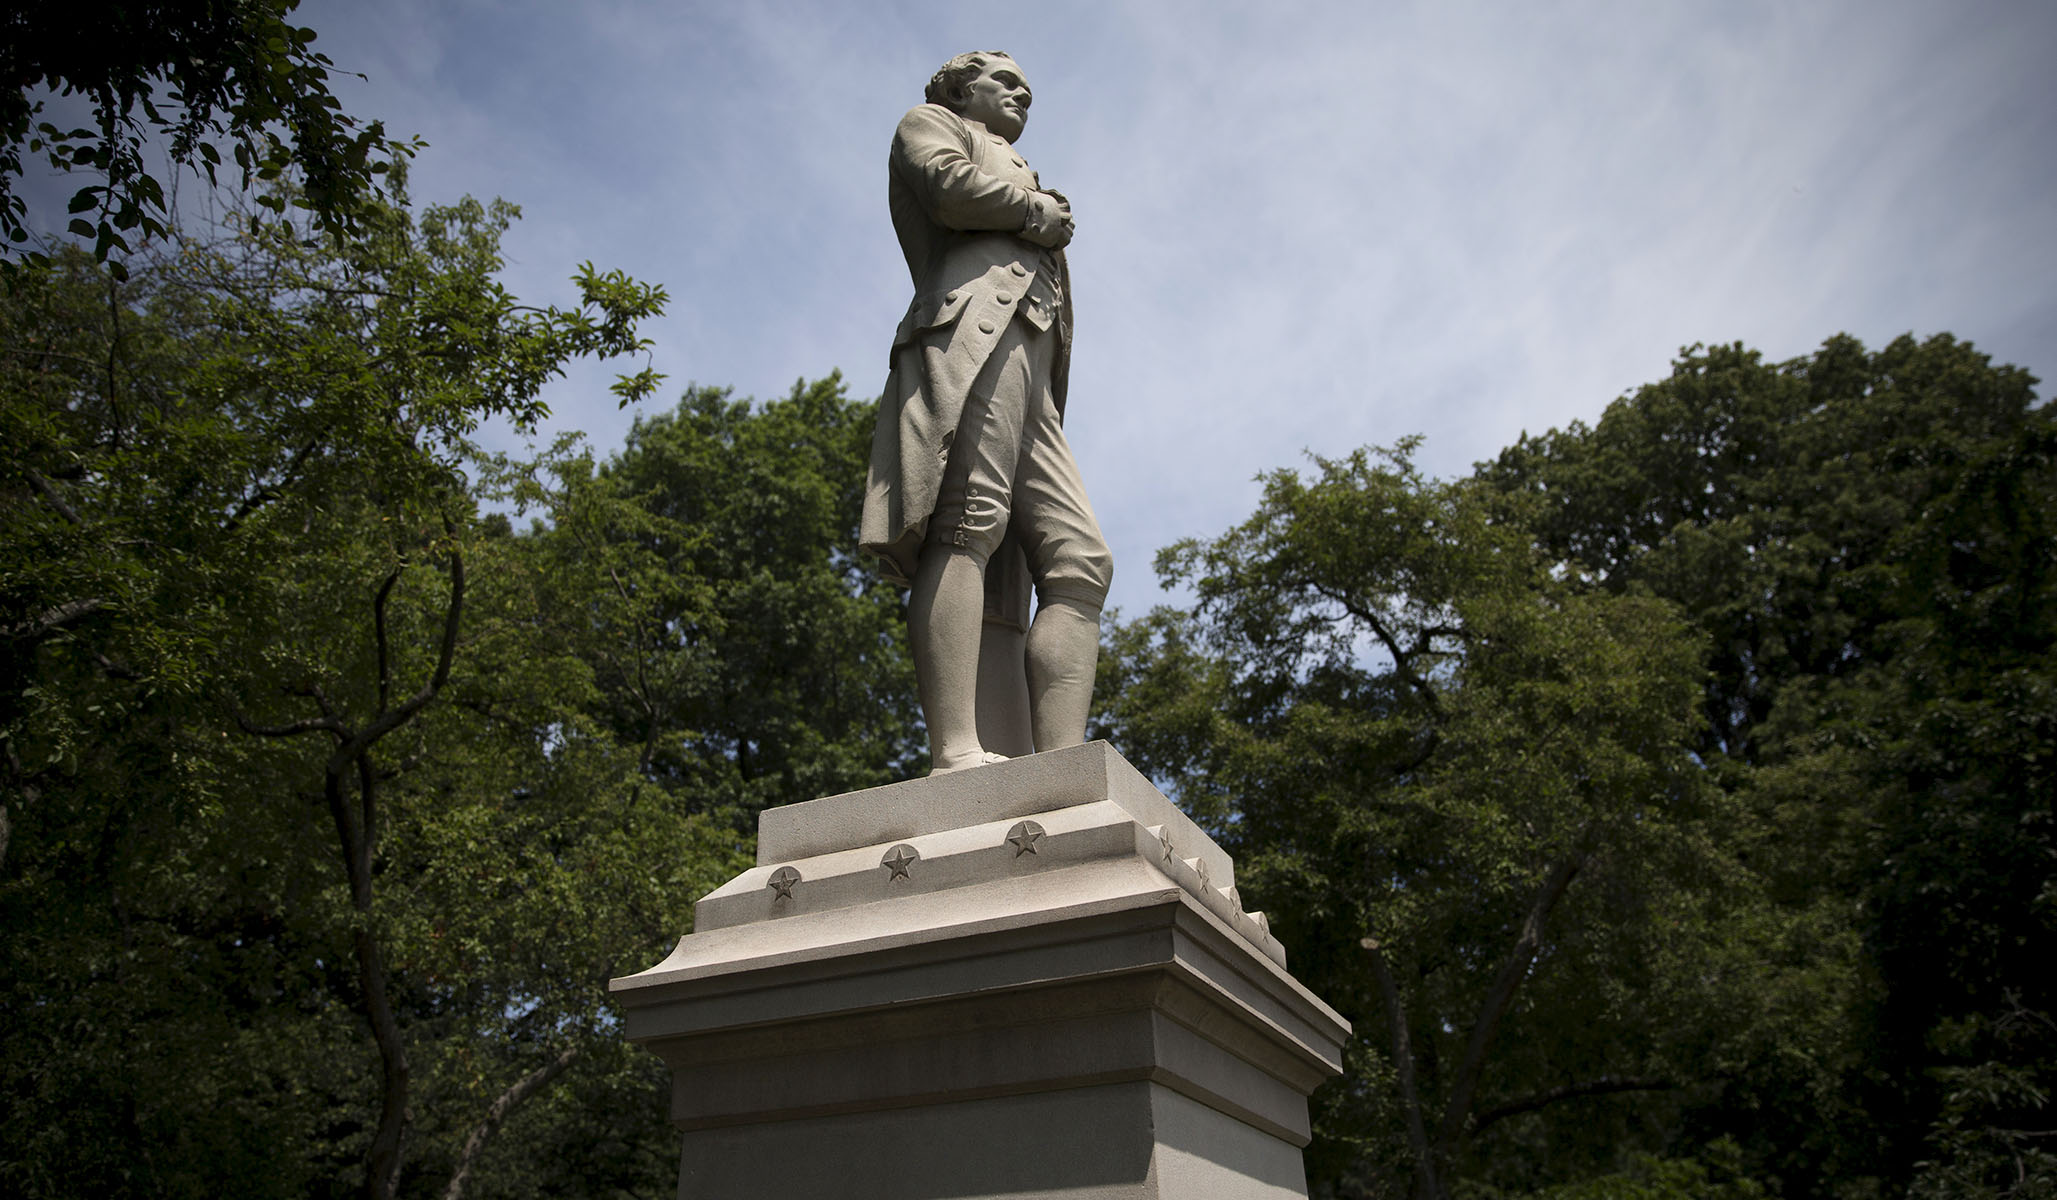 NYC Commissioner Wants to Remove Statues of Men. It's about Time.